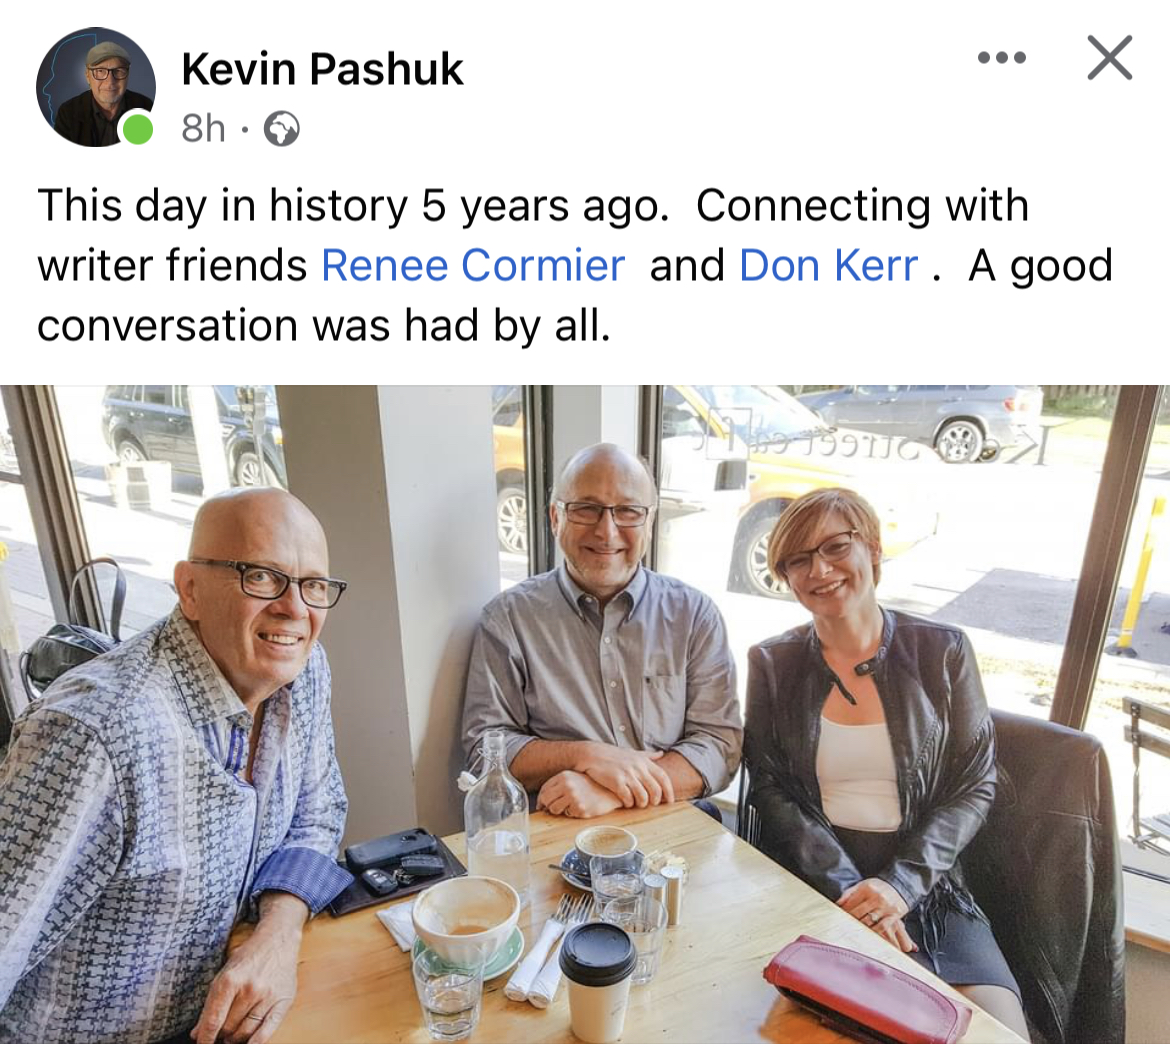 @don kerr @Kevin Pashuk @Renée 🐝 Cormier - & Kevin Pashuk eee X ® 8h -§  This day in history 5 years ago. Connecting with writer friends Renee Cormier and Don Kerr. A good conversation was had by all.  anim N. 3  > 1  2 r